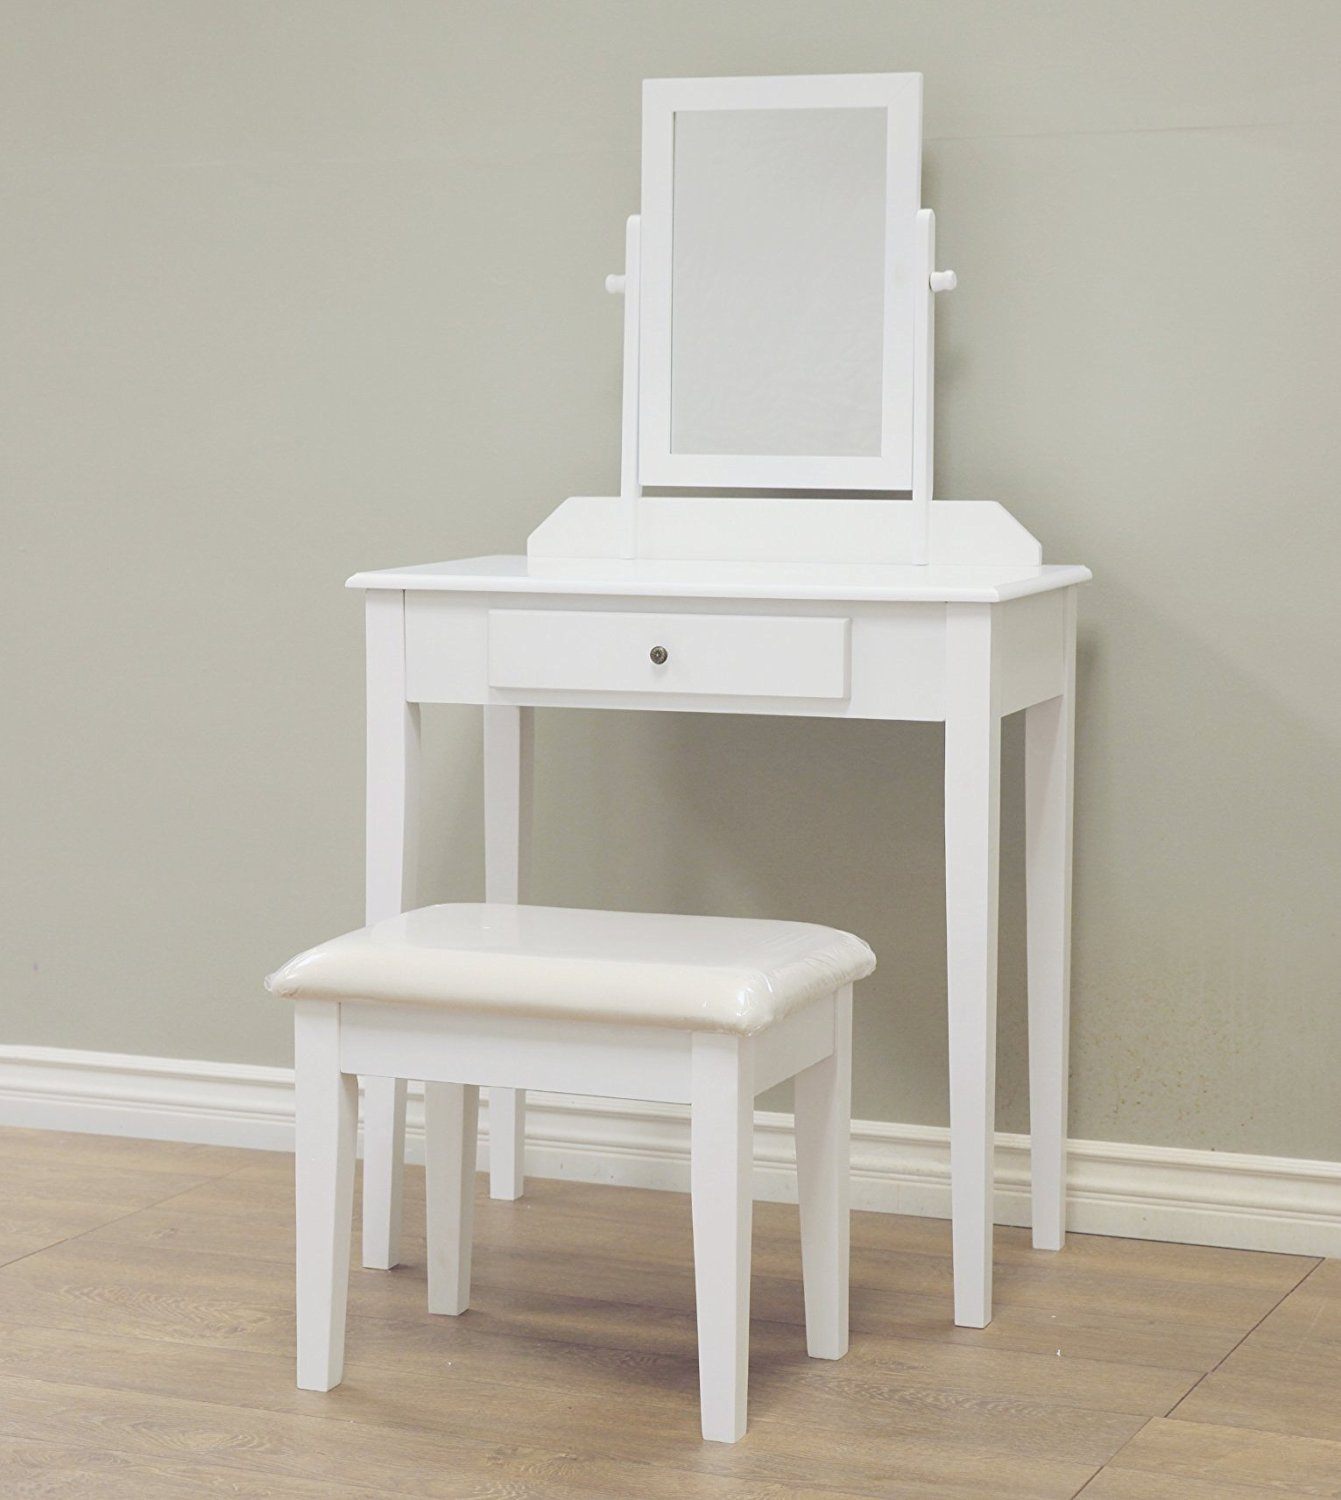 W-HY-0611 French style Home Furnishing 3 Piece Wood White Vanity Set